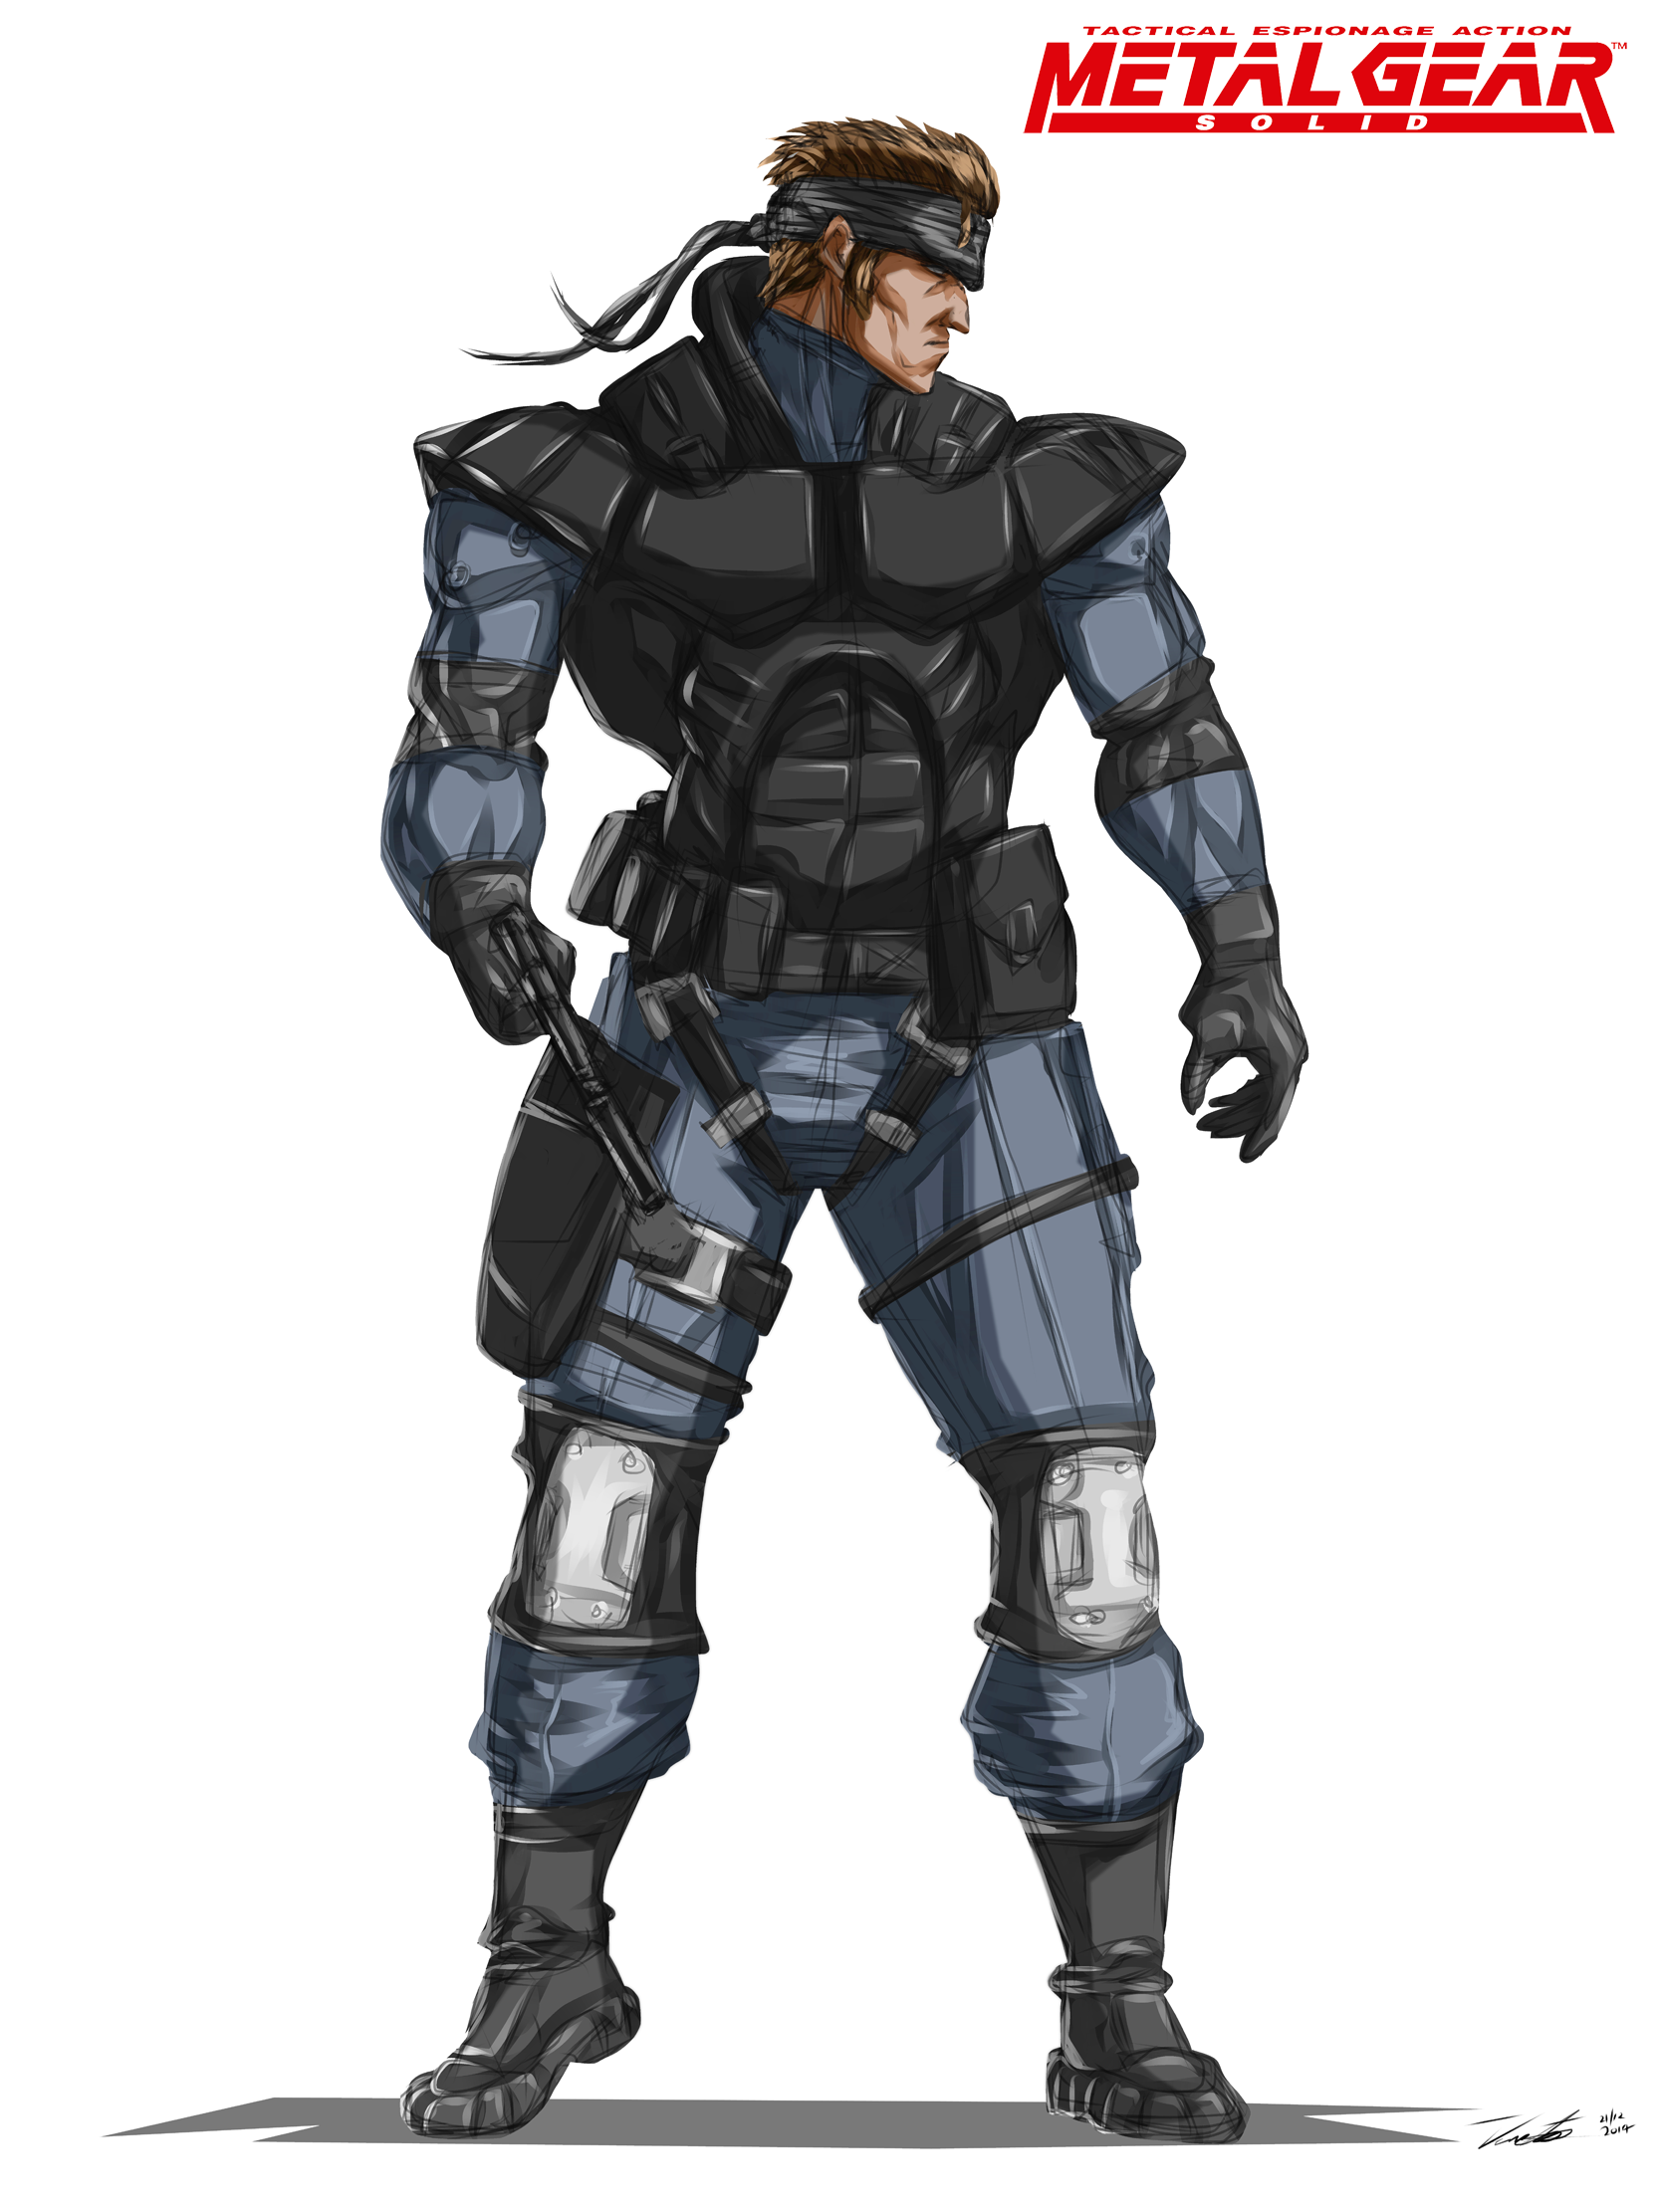 A Digital Sketch Painting I Made Of Solid Snake From The First Metal Gear Solid Video Game Sketch Painting Digital Artwork Metal Gear Solid